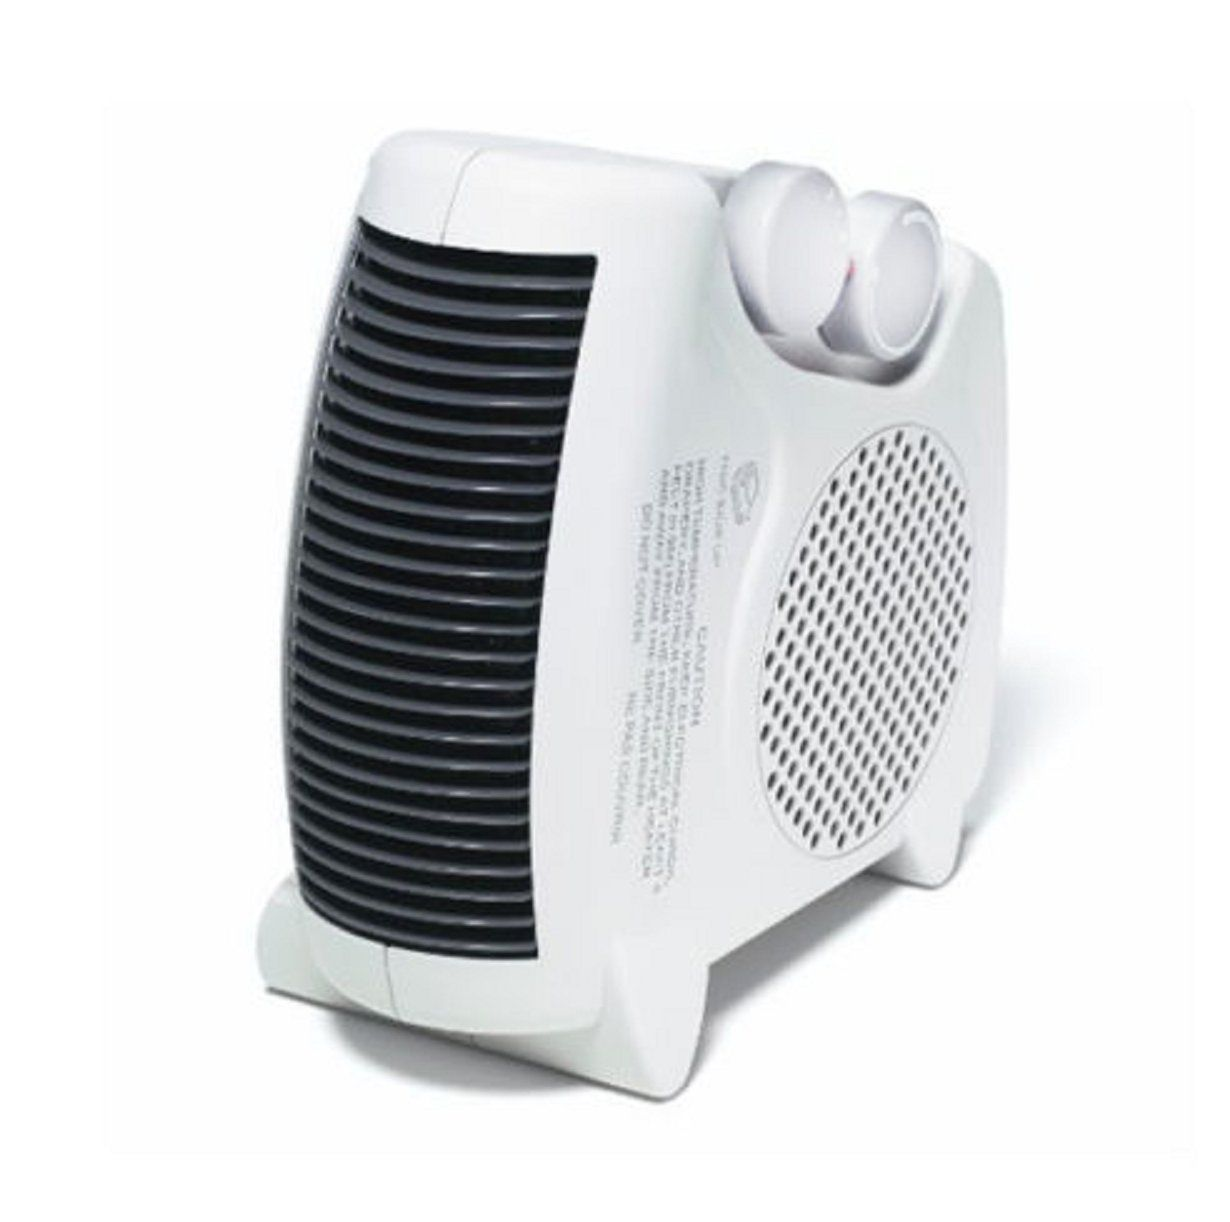 Heater Portable Air Safe Room Space Heater Floor And Upright 3 Fan Speeds And Thermostat Read More Reviews Of The Product By Space Heater Safe Room Heater